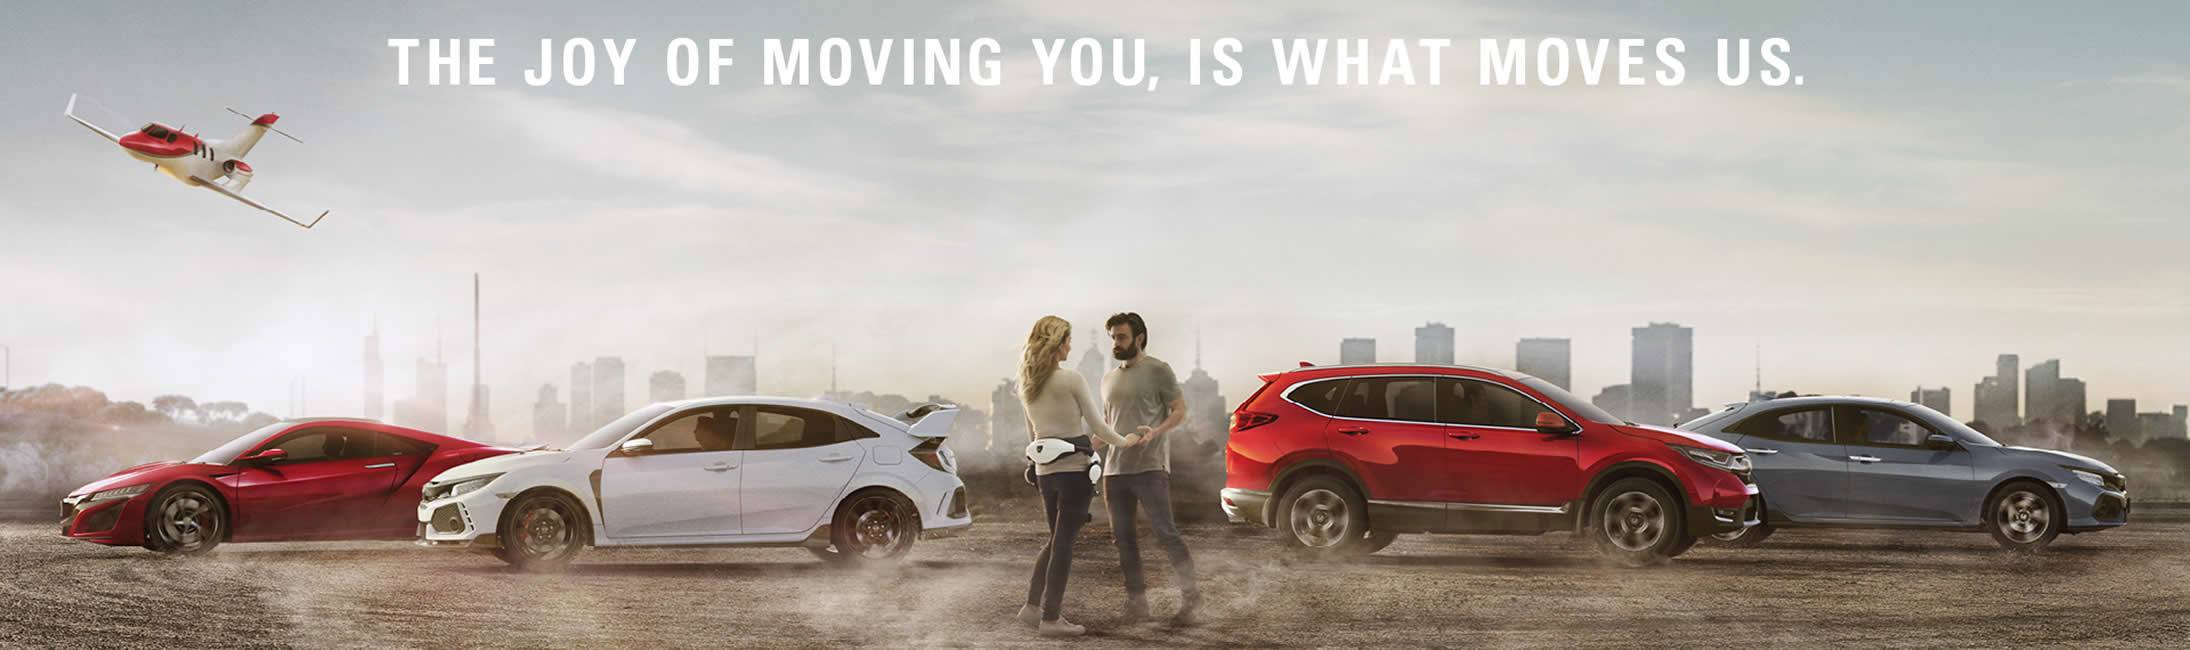 Burswood Honda - Joy_of_Moving